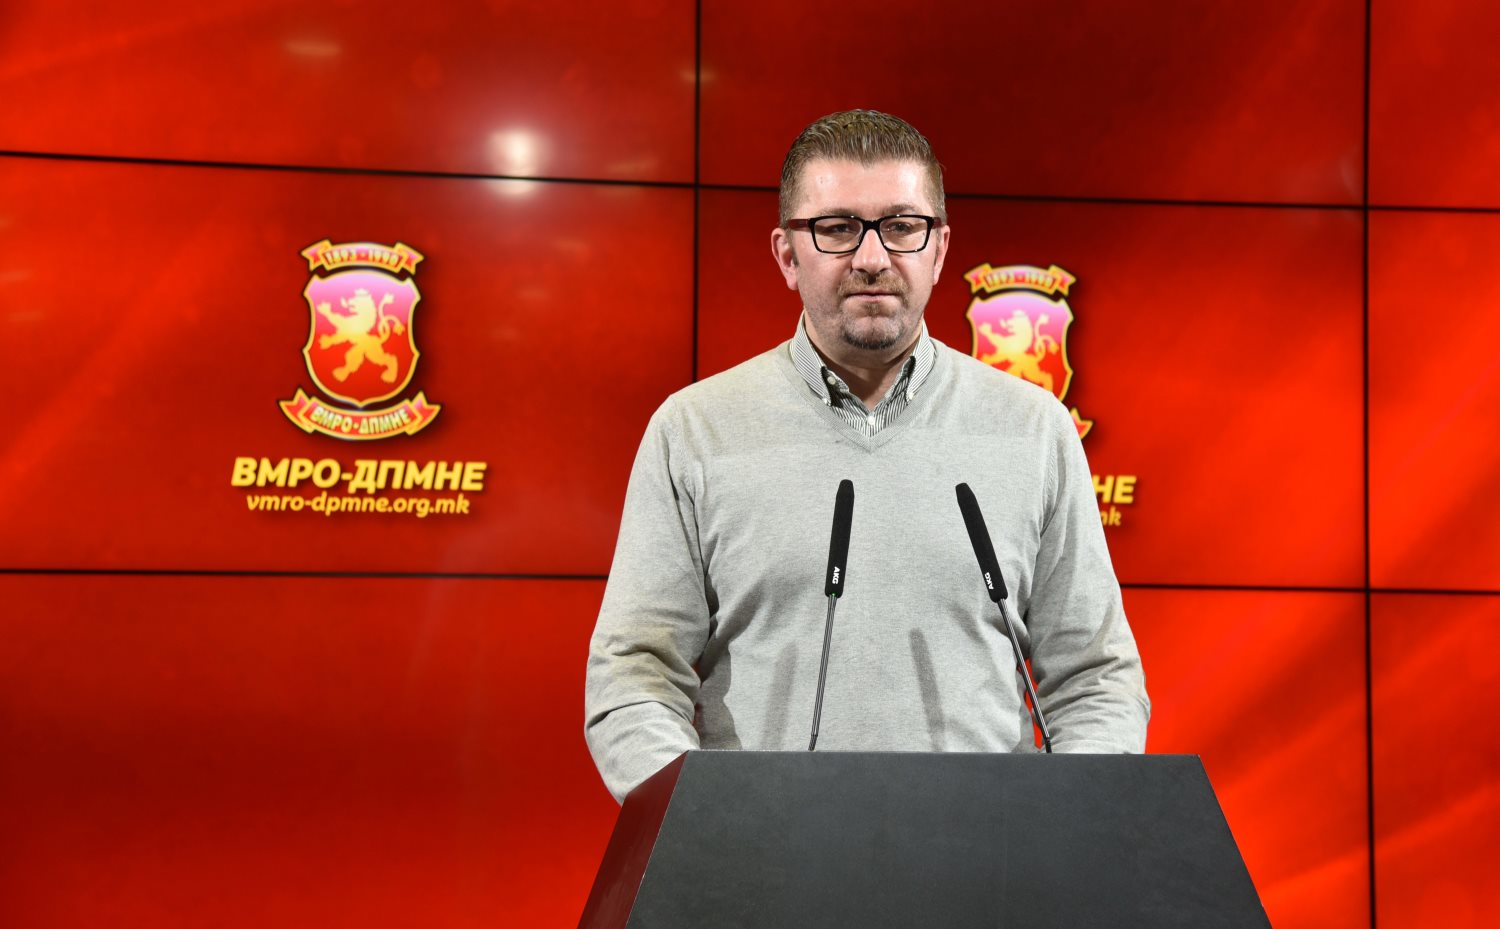 Misckoski is the only candidate for the leadership of VMRO-DPMNE